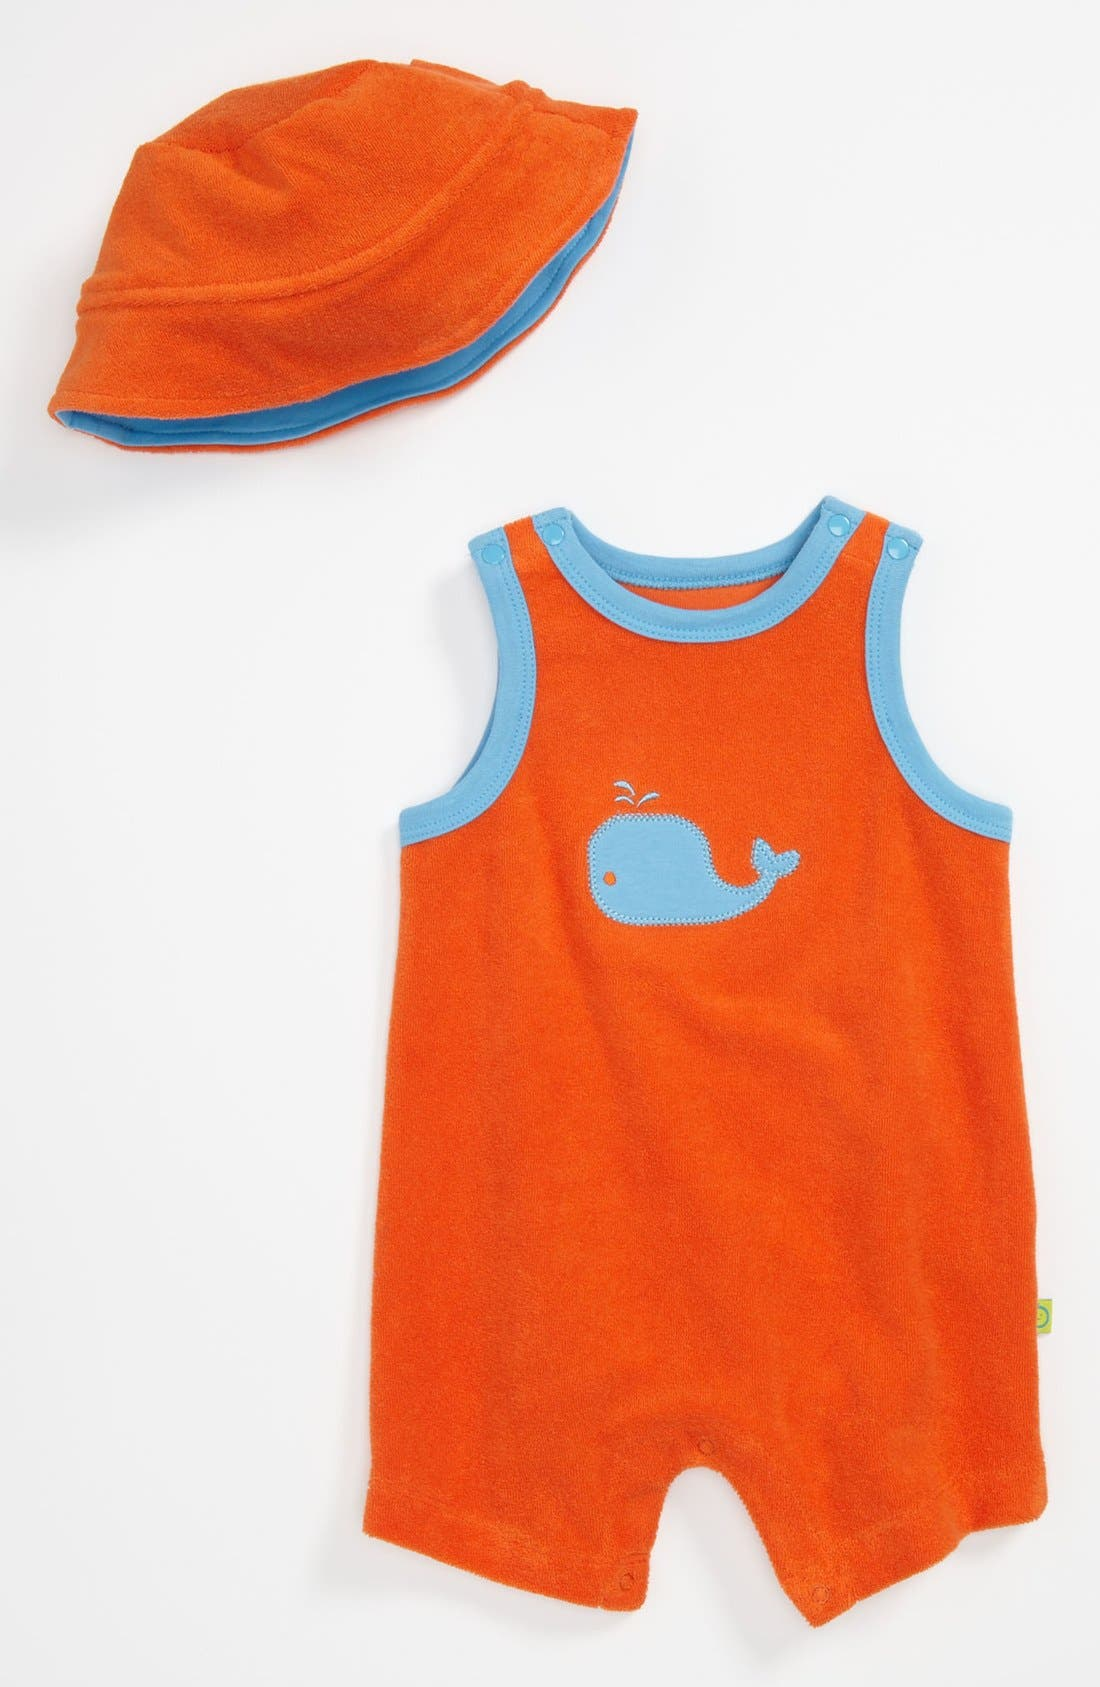 Main Image - Offspring 'Flame Whale' Romper & Hat (Baby)